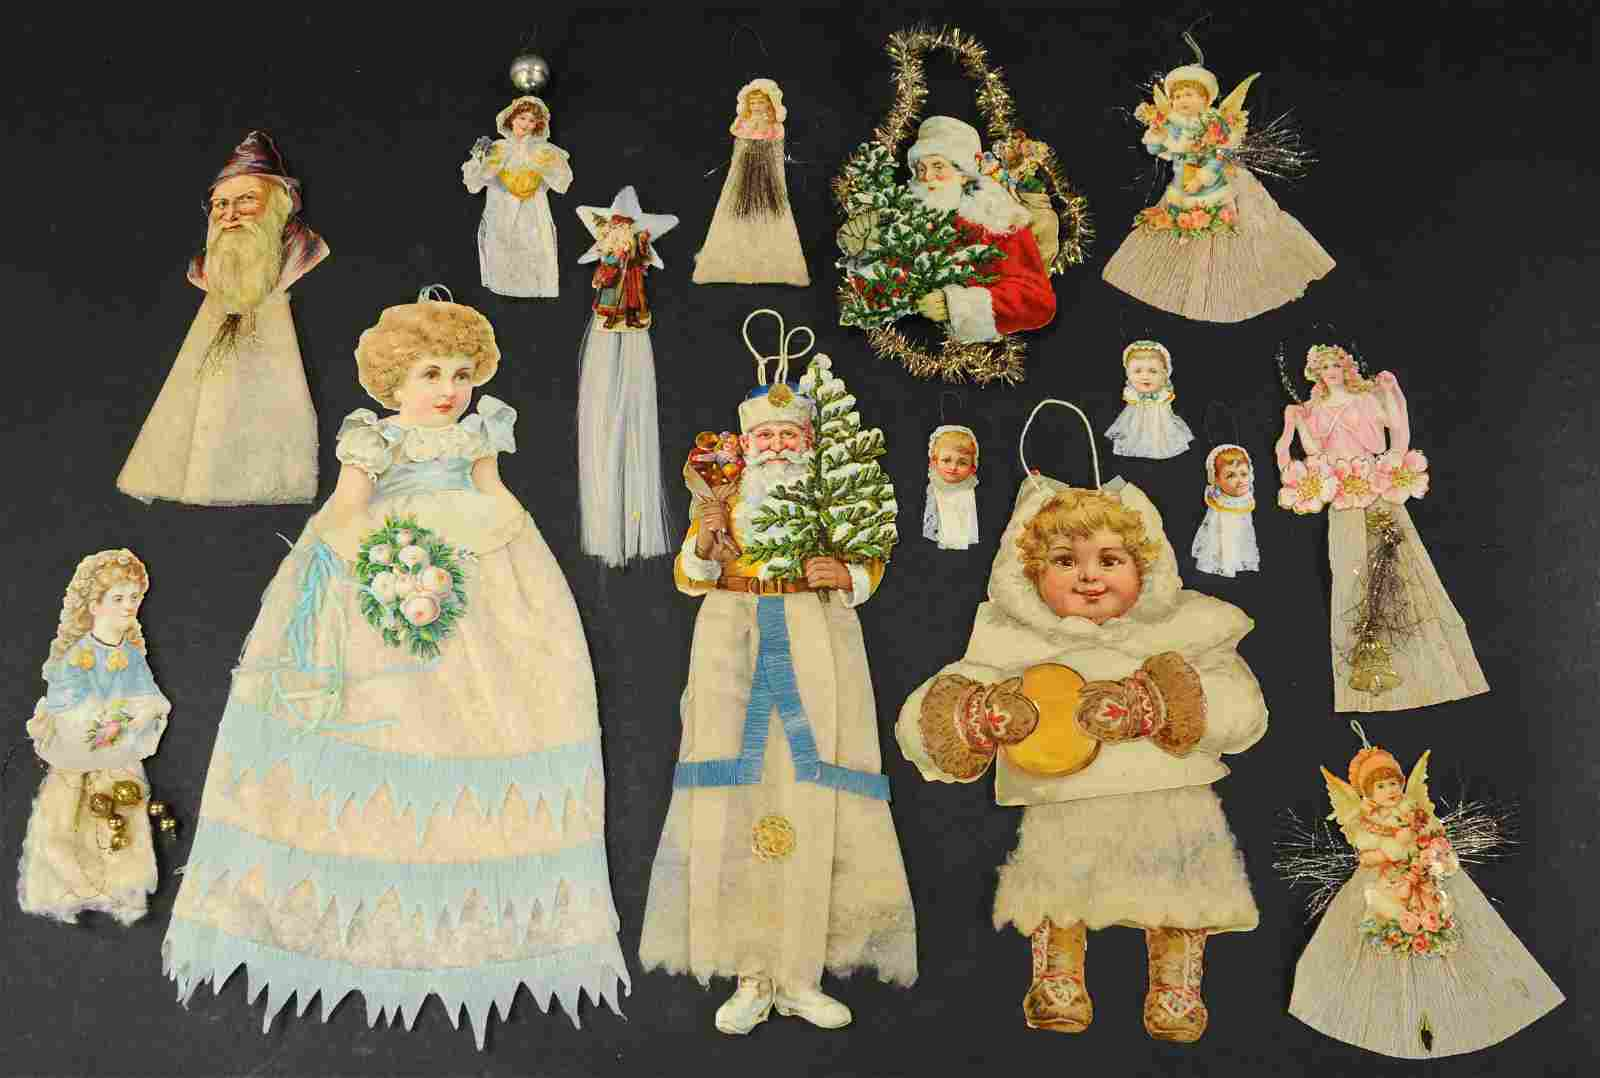 GROUPING OF DIE-CUTS AND COTTON SCRAP ORNAMENTS